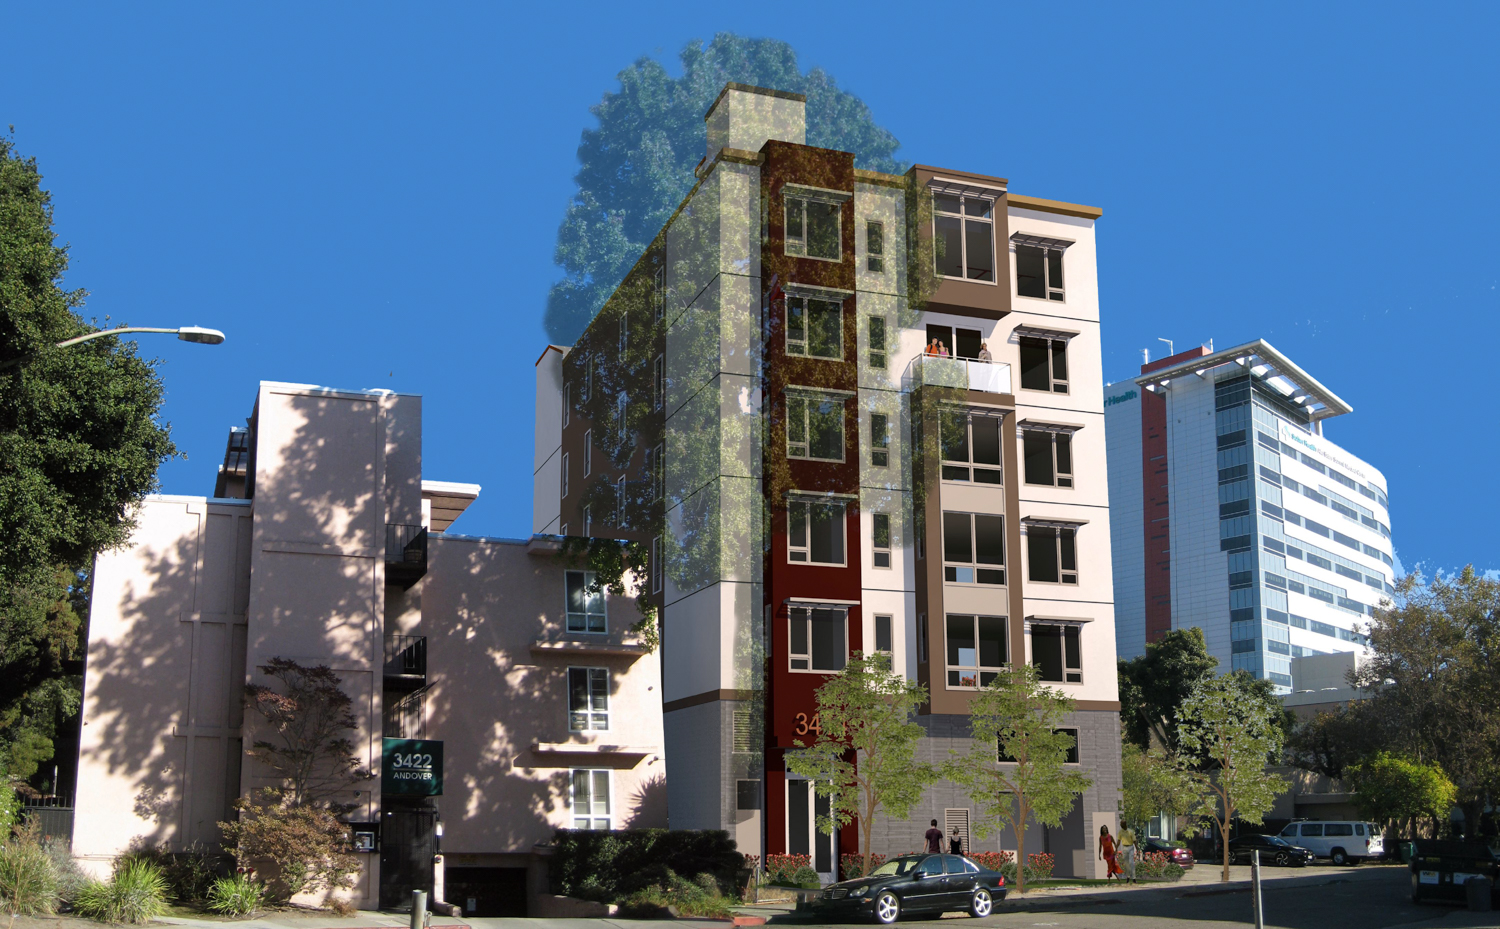 3414 Andover Street northwest rendering, design by Kotas Pantaleoni Architects